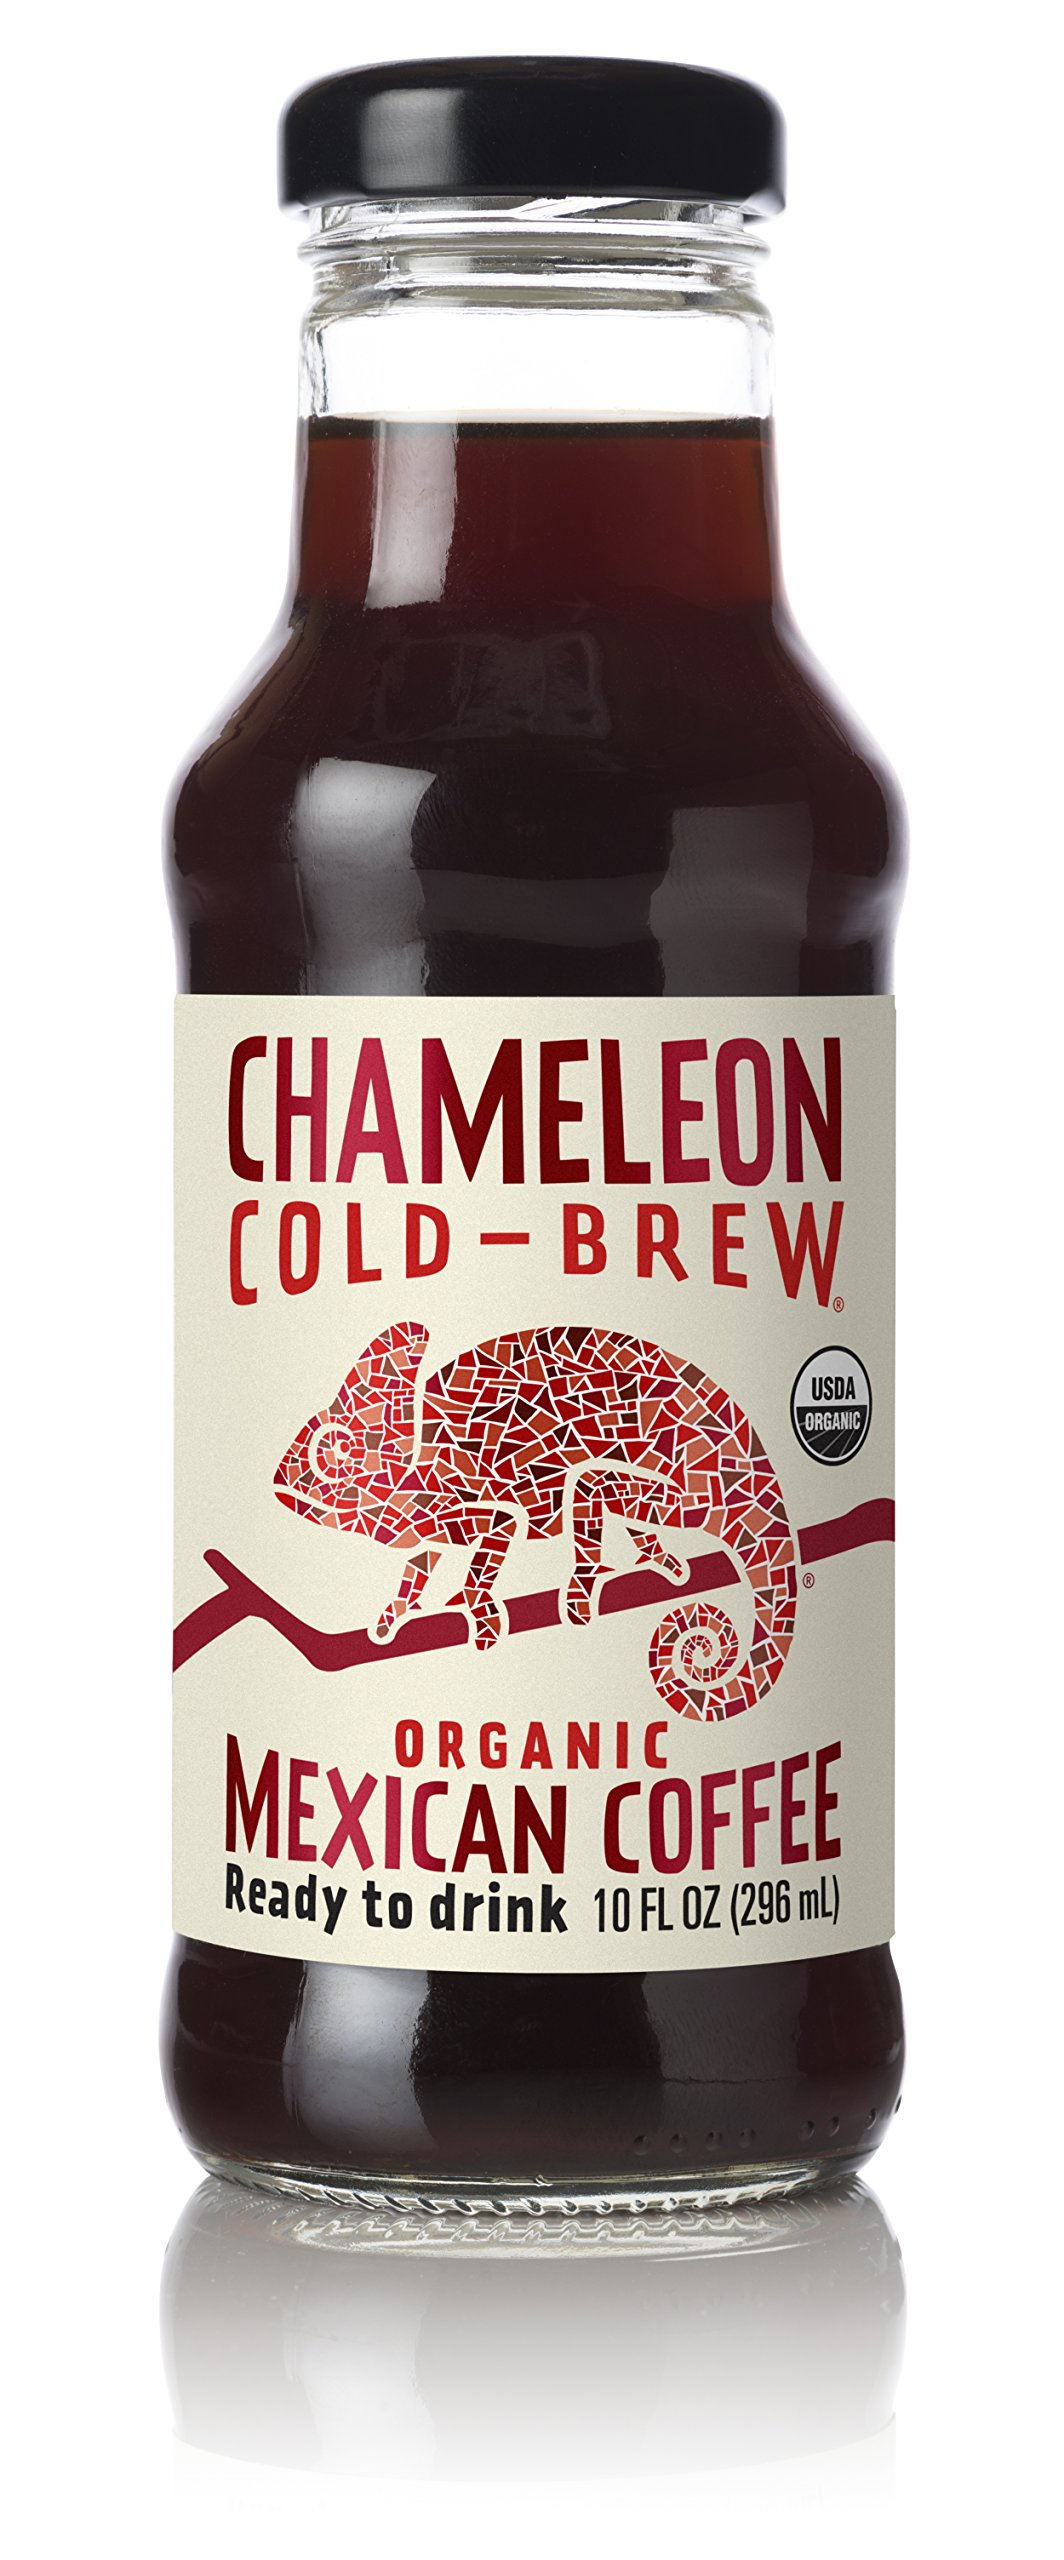 Chameleon Cold-Brew Mexican Ready-to-Drink Coffee 12 pack by Chameleon Cold Brew